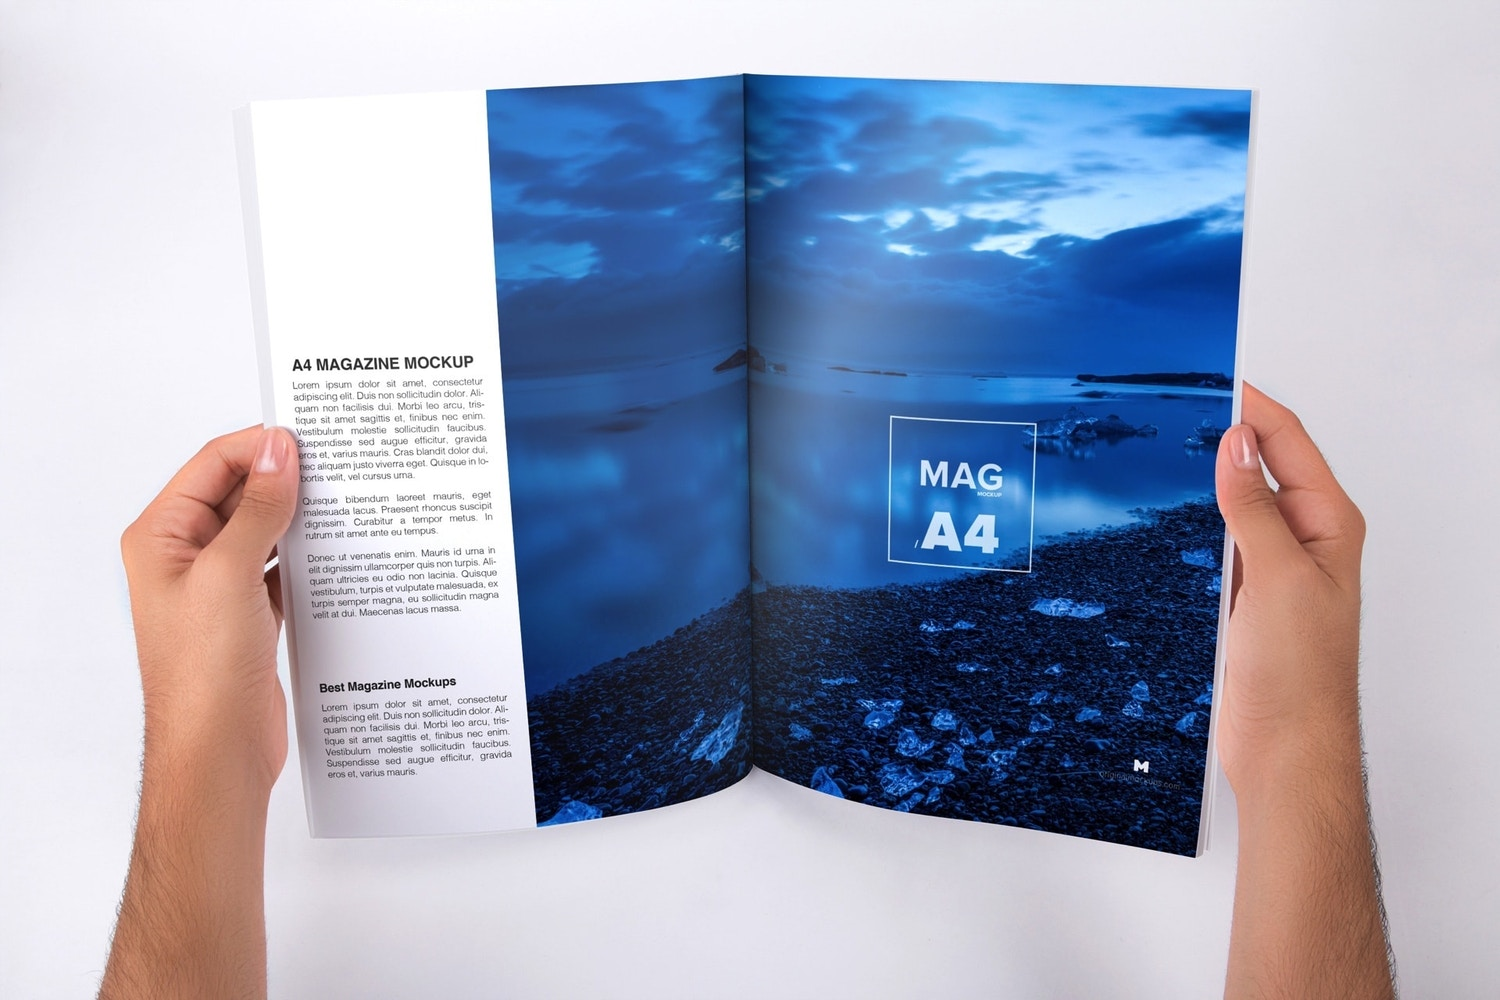 Holding A4 Magazine Opened Mockup by Original Mockups on Original Mockups